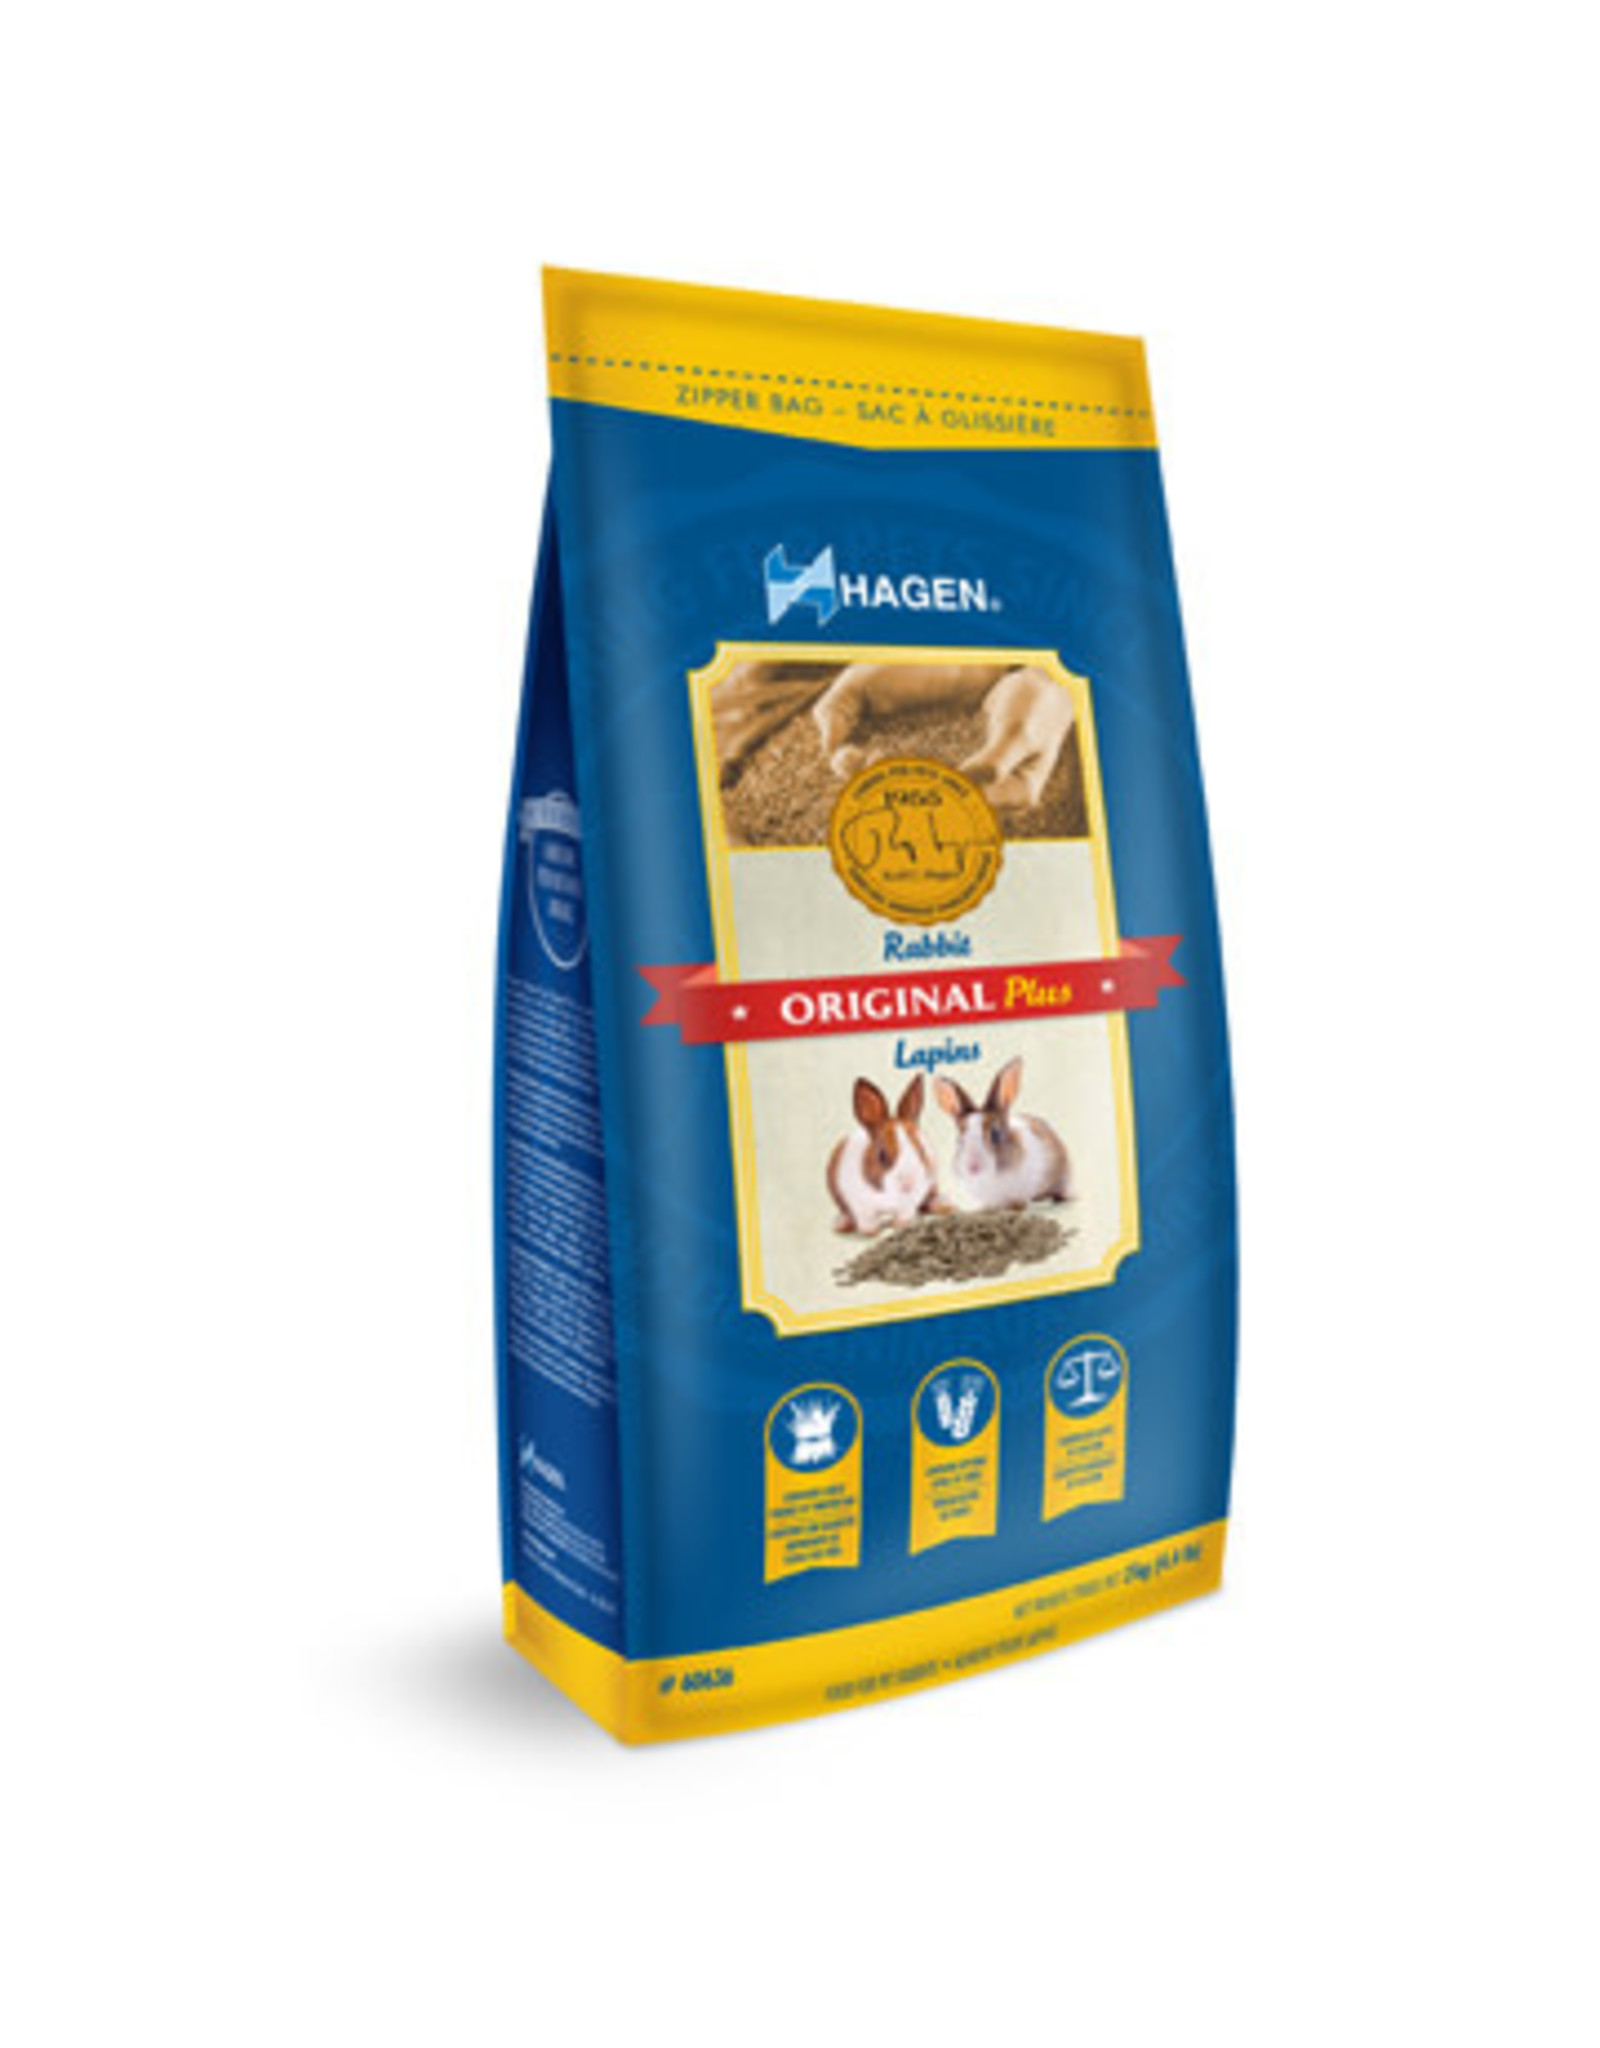 Hagen Hagen Original Plus Rabbit Food - 2 kg (4.4 lb)